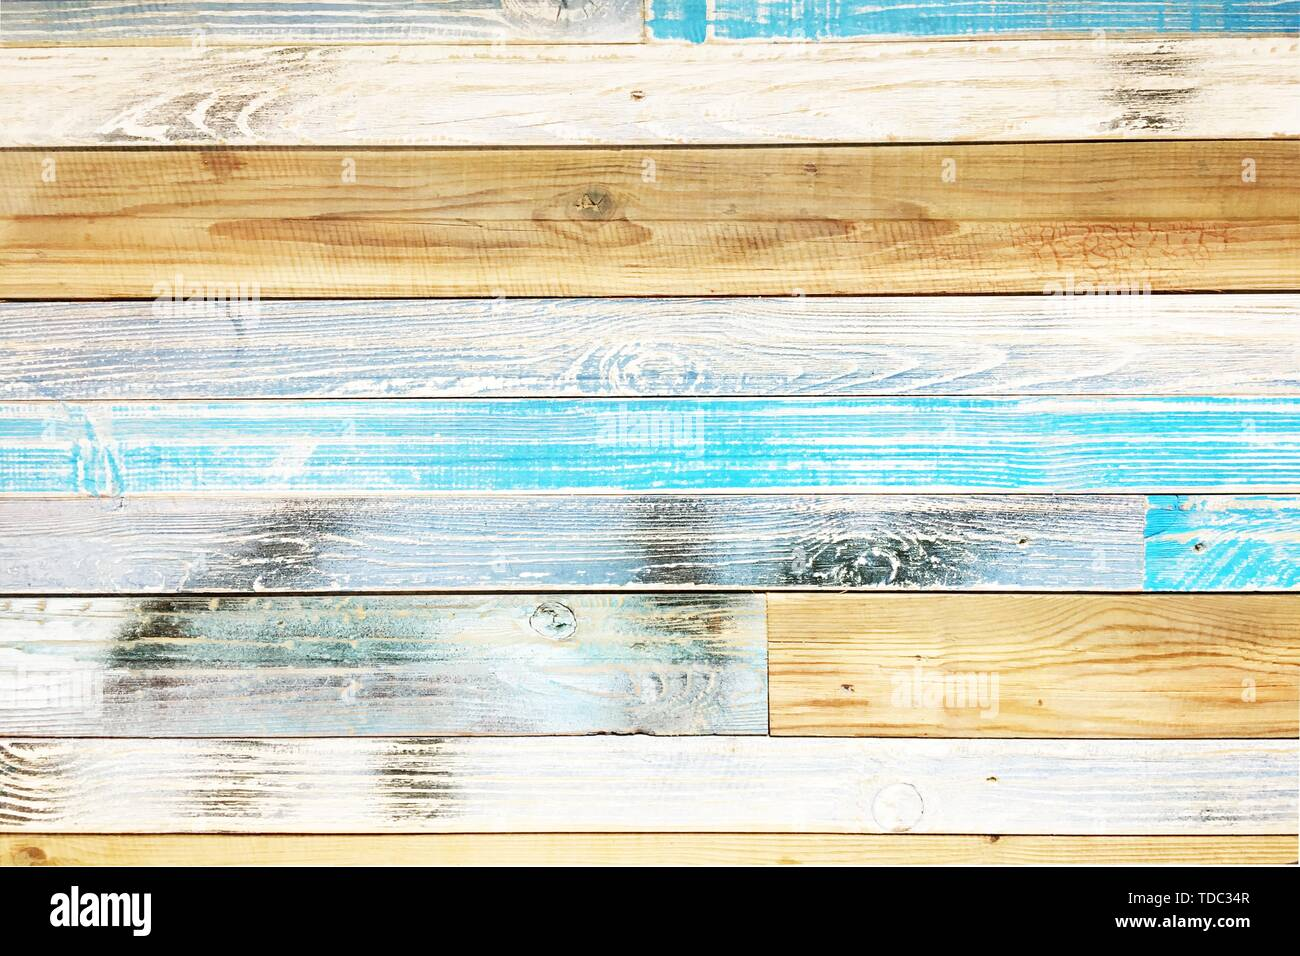 wood parquet texture, colorful wooden floor background - Stock Image